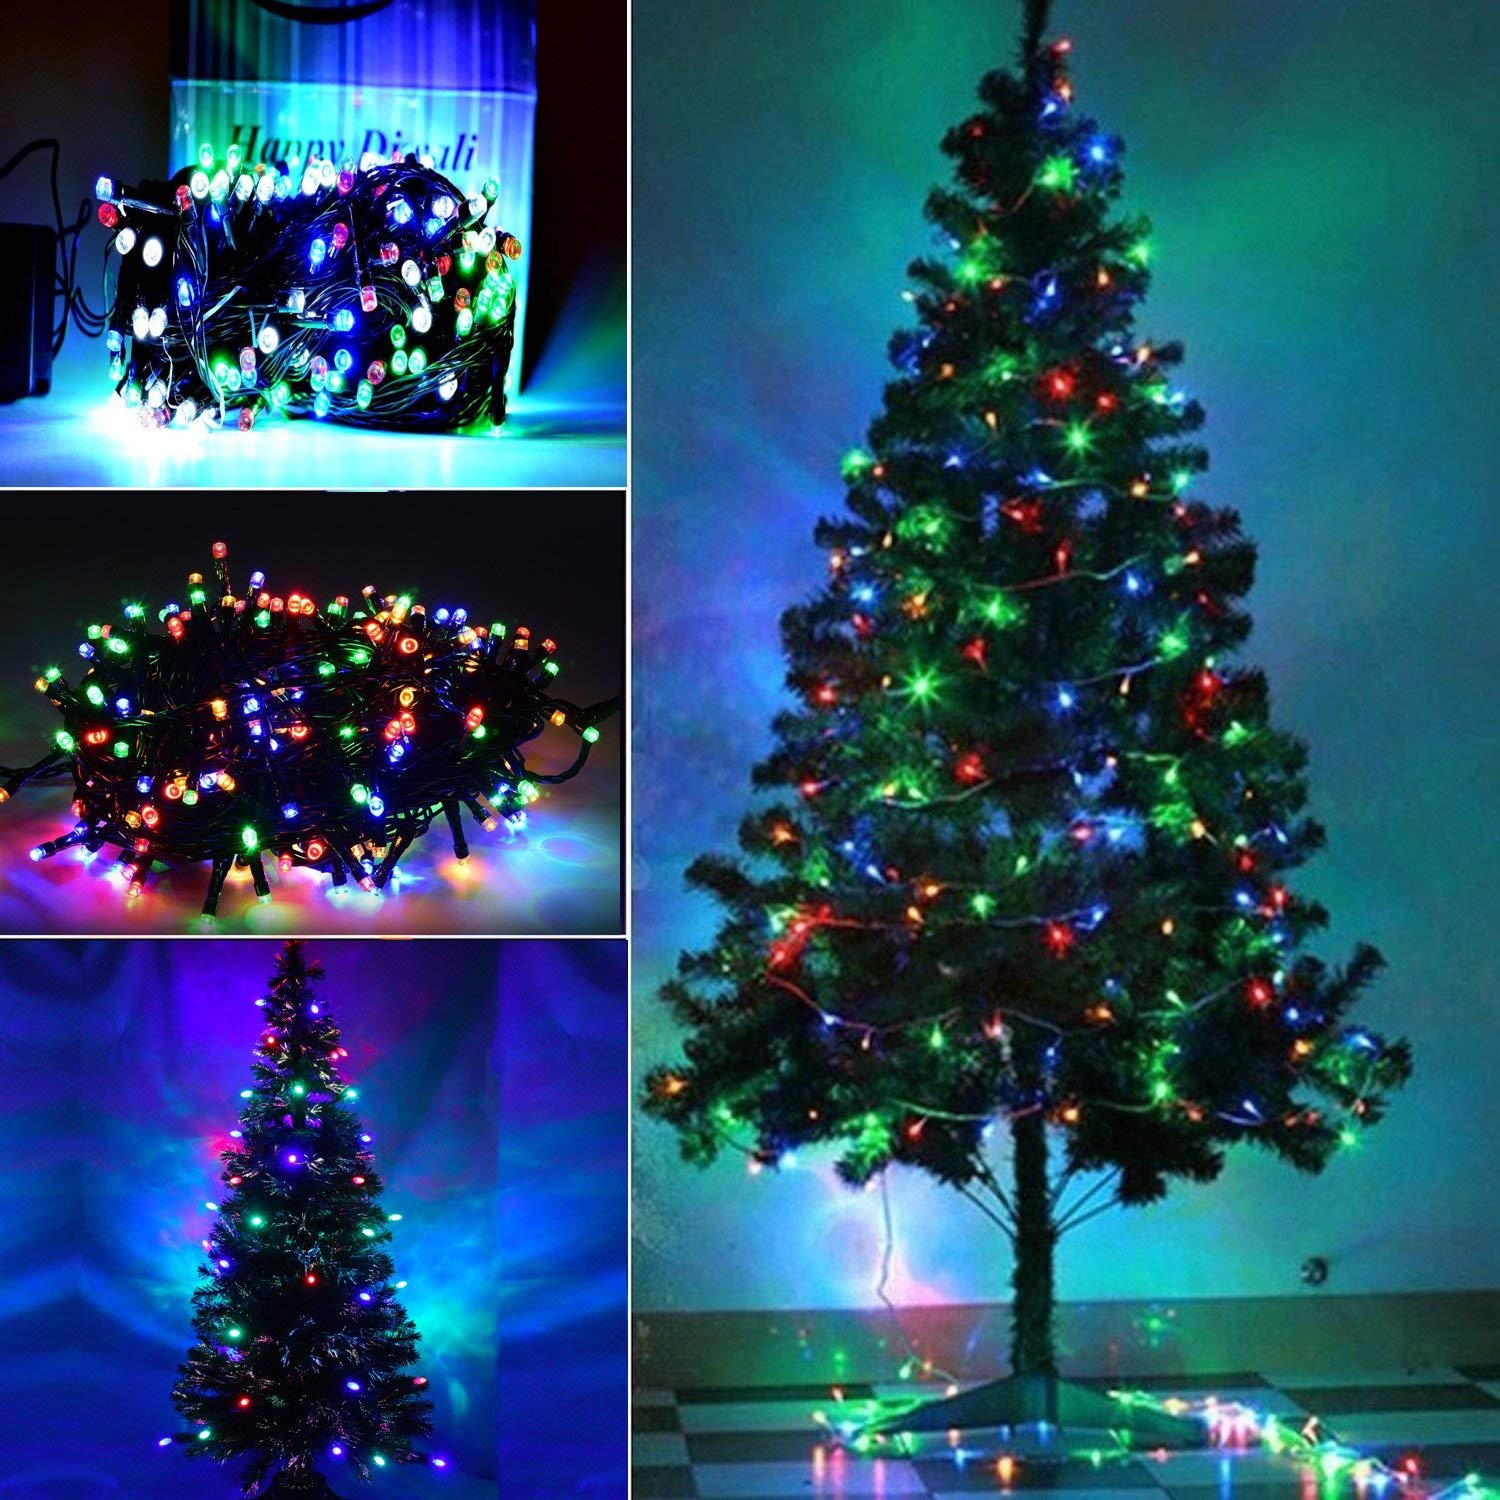 Buy A2z Artificial Christmas Tree And Multicolour Led Lights Online At Low Prices In India Amazon In A christmas tree is a decorated tree, usually an evergreen conifer such as spruce, pine, or fir or an all photos are checked for quality, so you get only beautiful desktop wallpapers. a2z artificial christmas tree and multicolour led lights